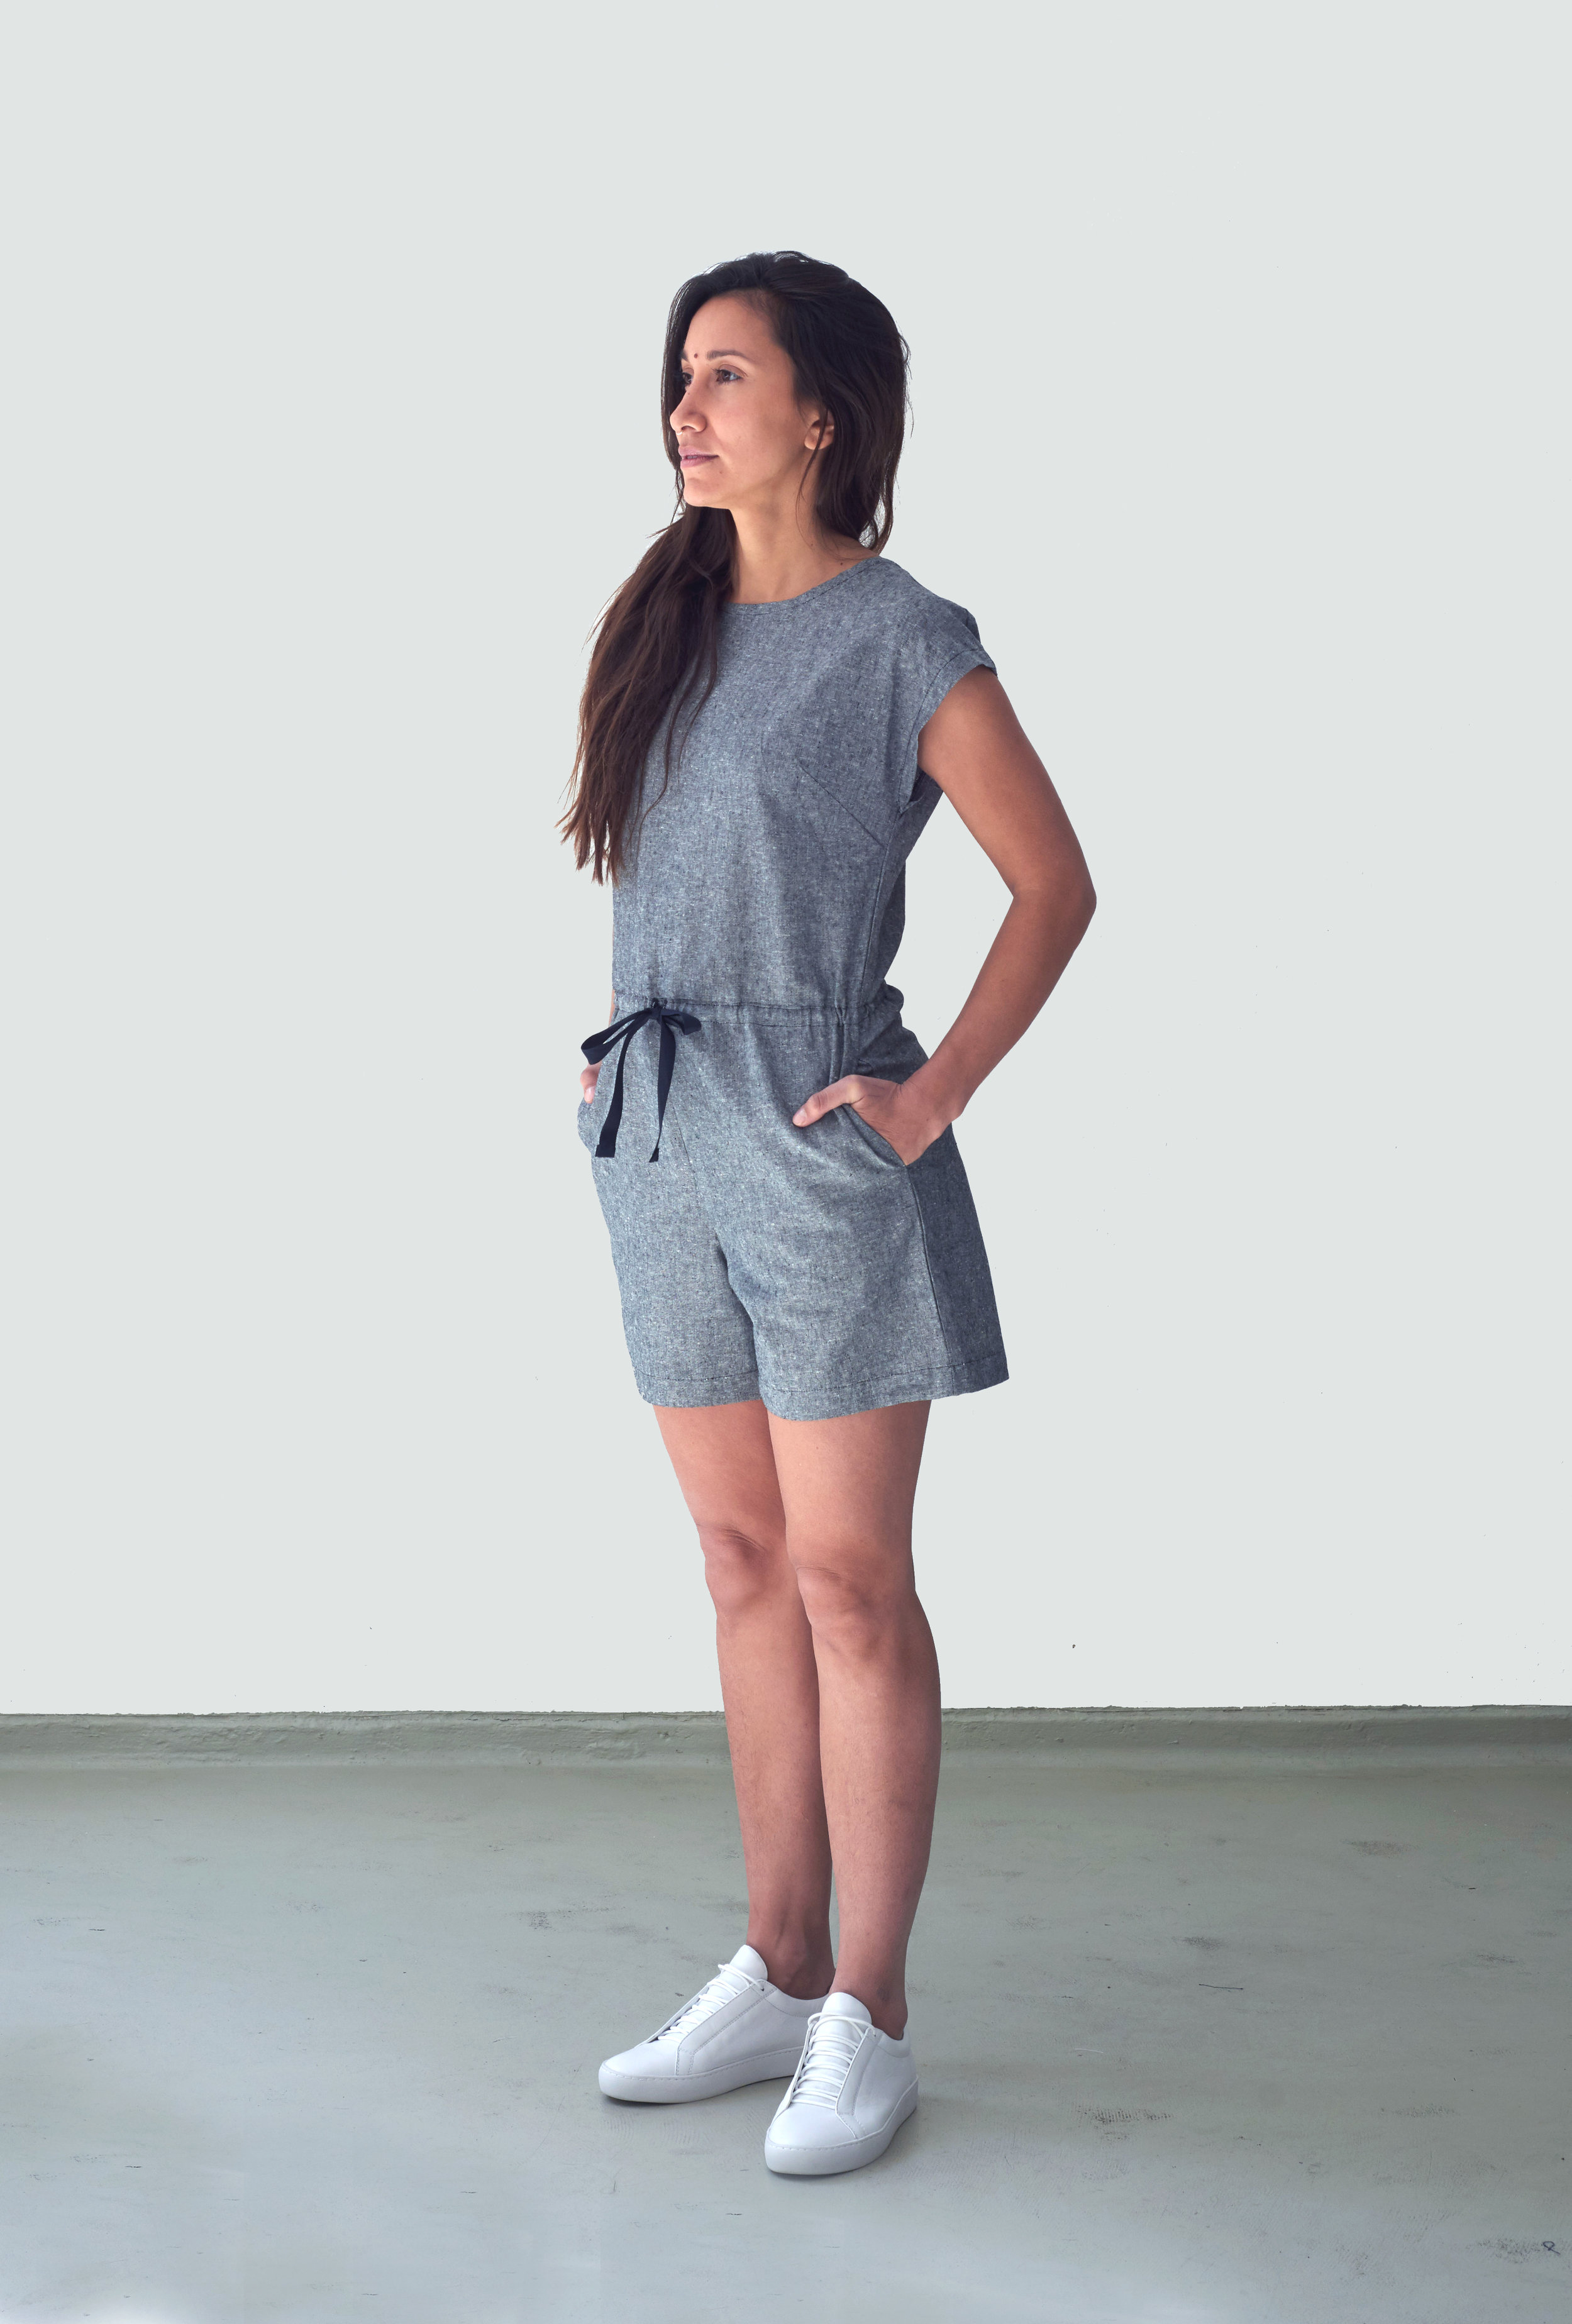 grey playsuit.jpg